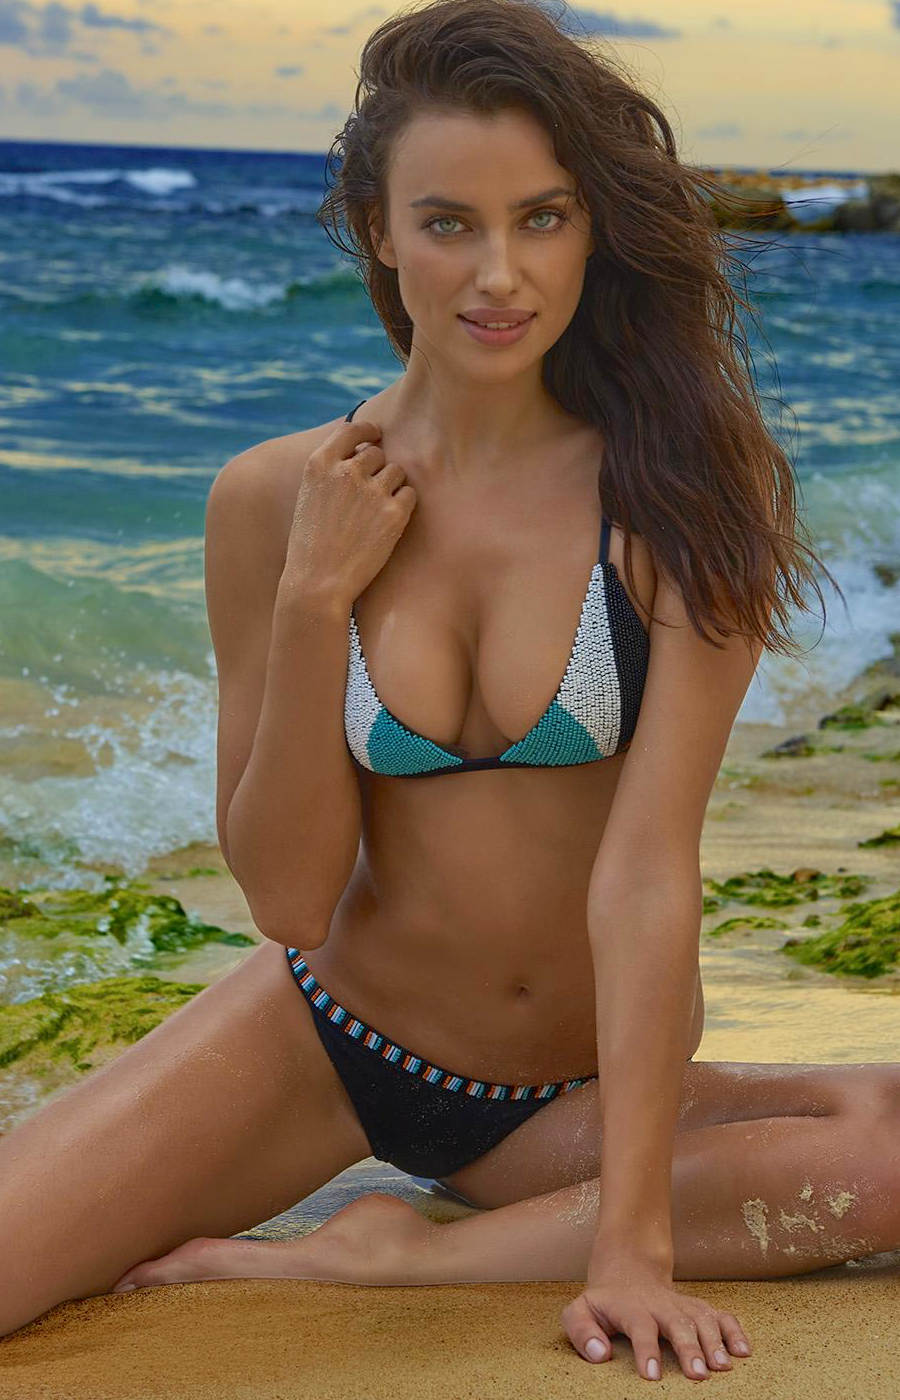 Irina Shayk for Sports Illustrated